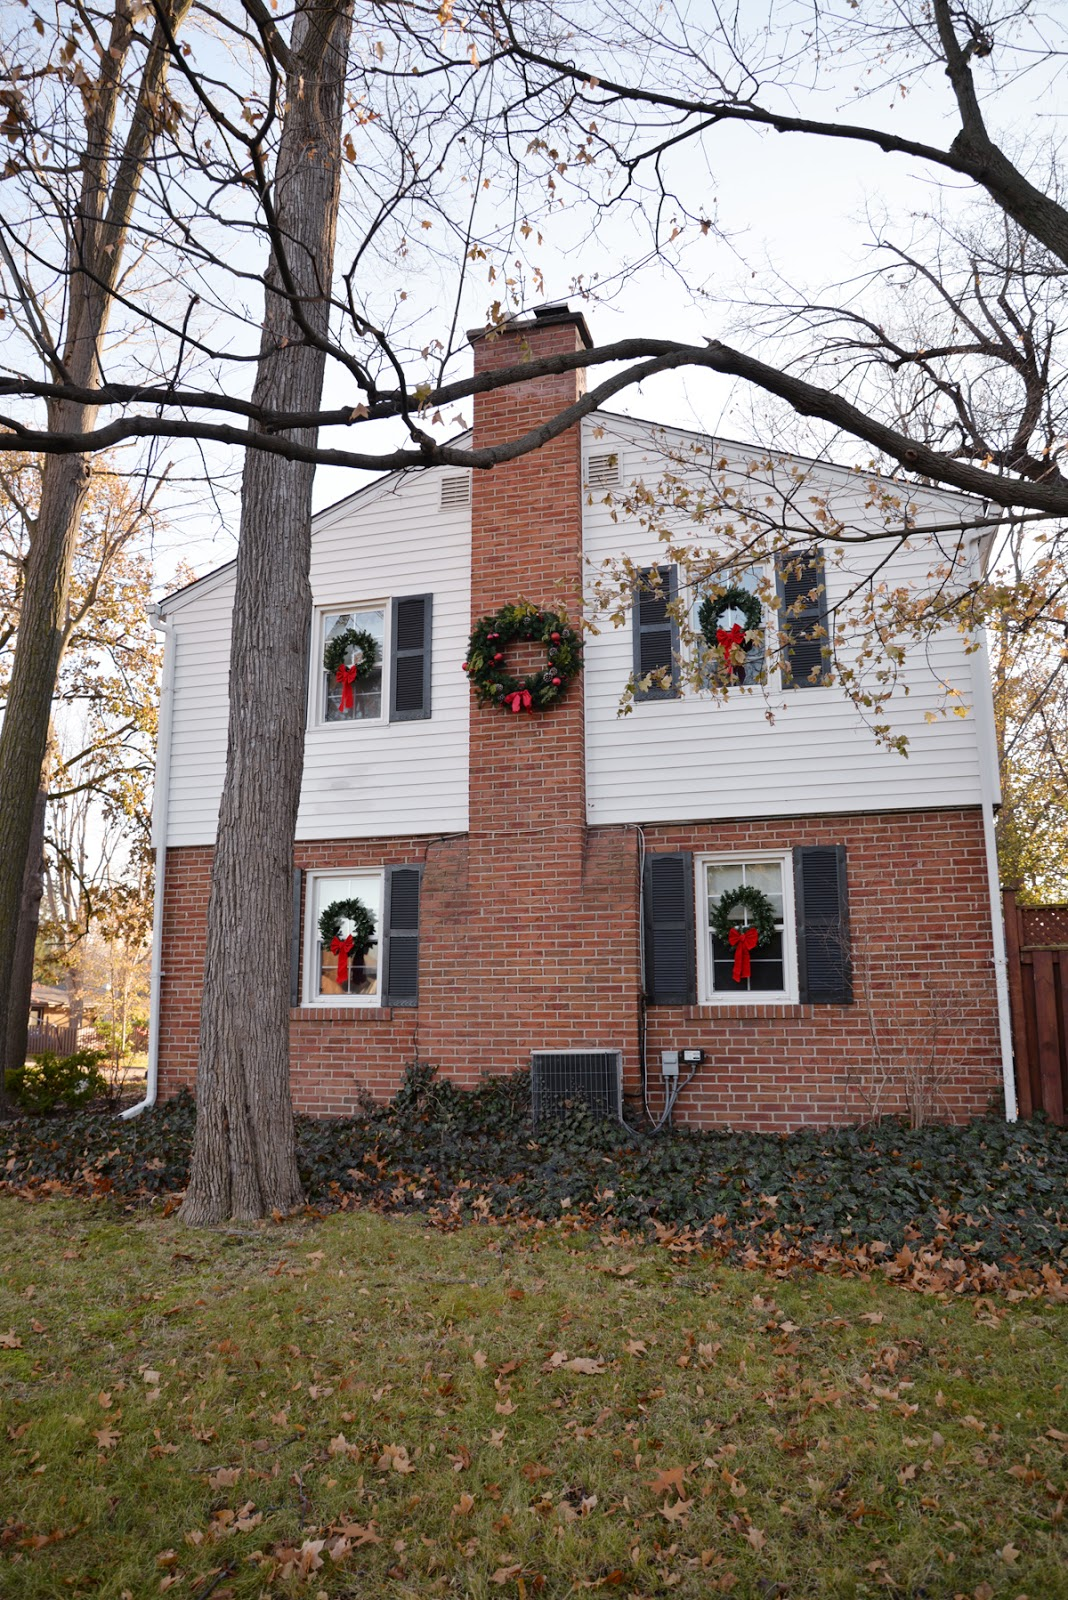 classic christmas decorations, colonial house with wreaths on windows, wreaths on exterior windows, wreath on chimney, large exterior wreath